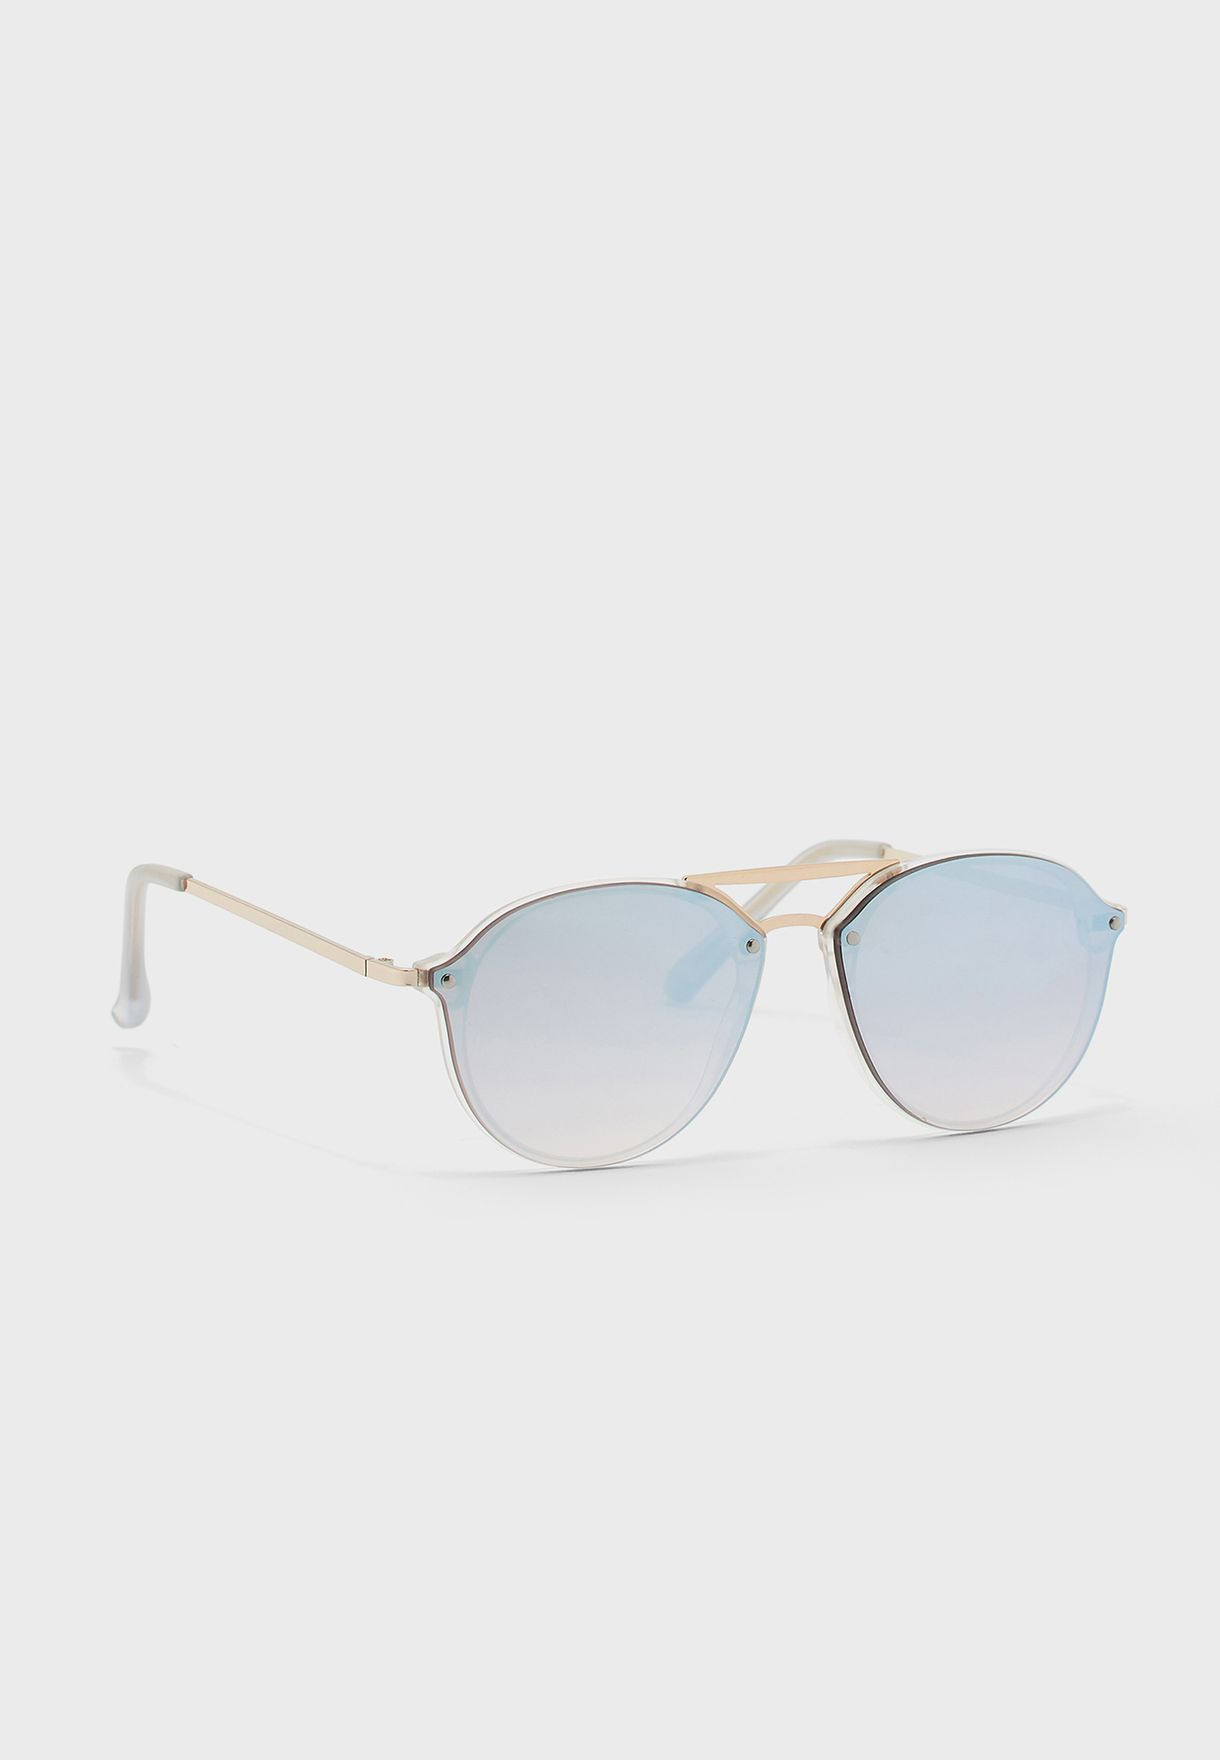 Adree Sunglasses